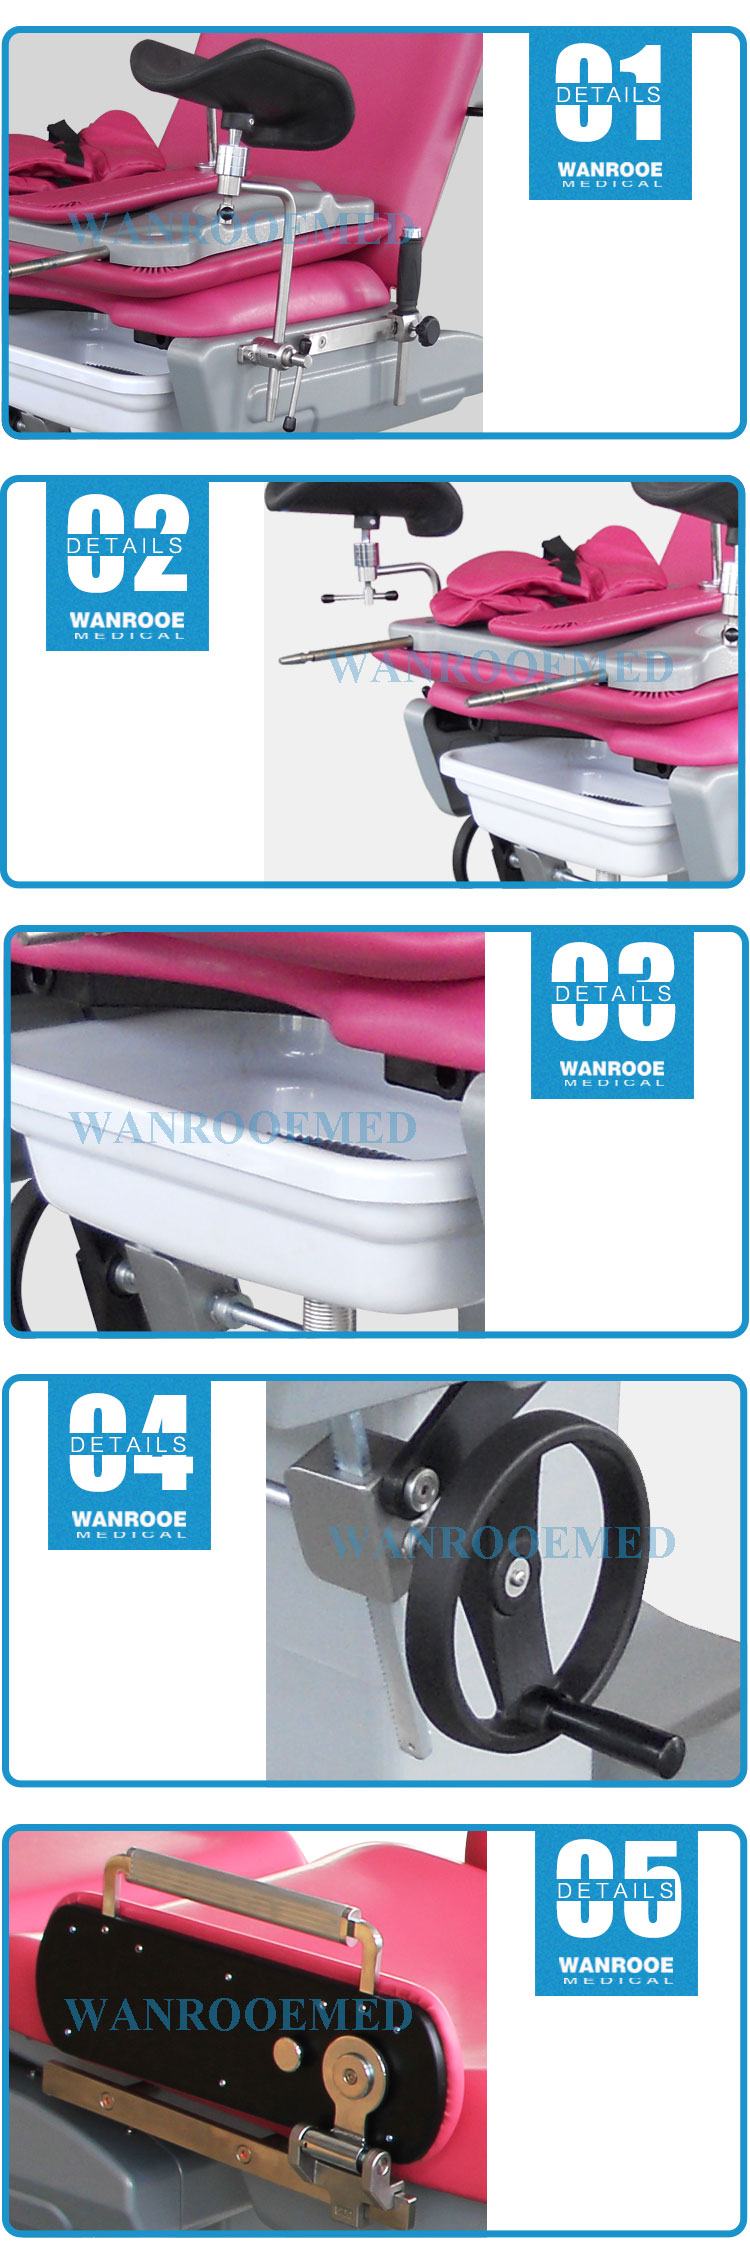 Obstetric Delivery Table, Maternity Bed, Hospital Labor Bed, Delivery Bed, Manual Delivery Table